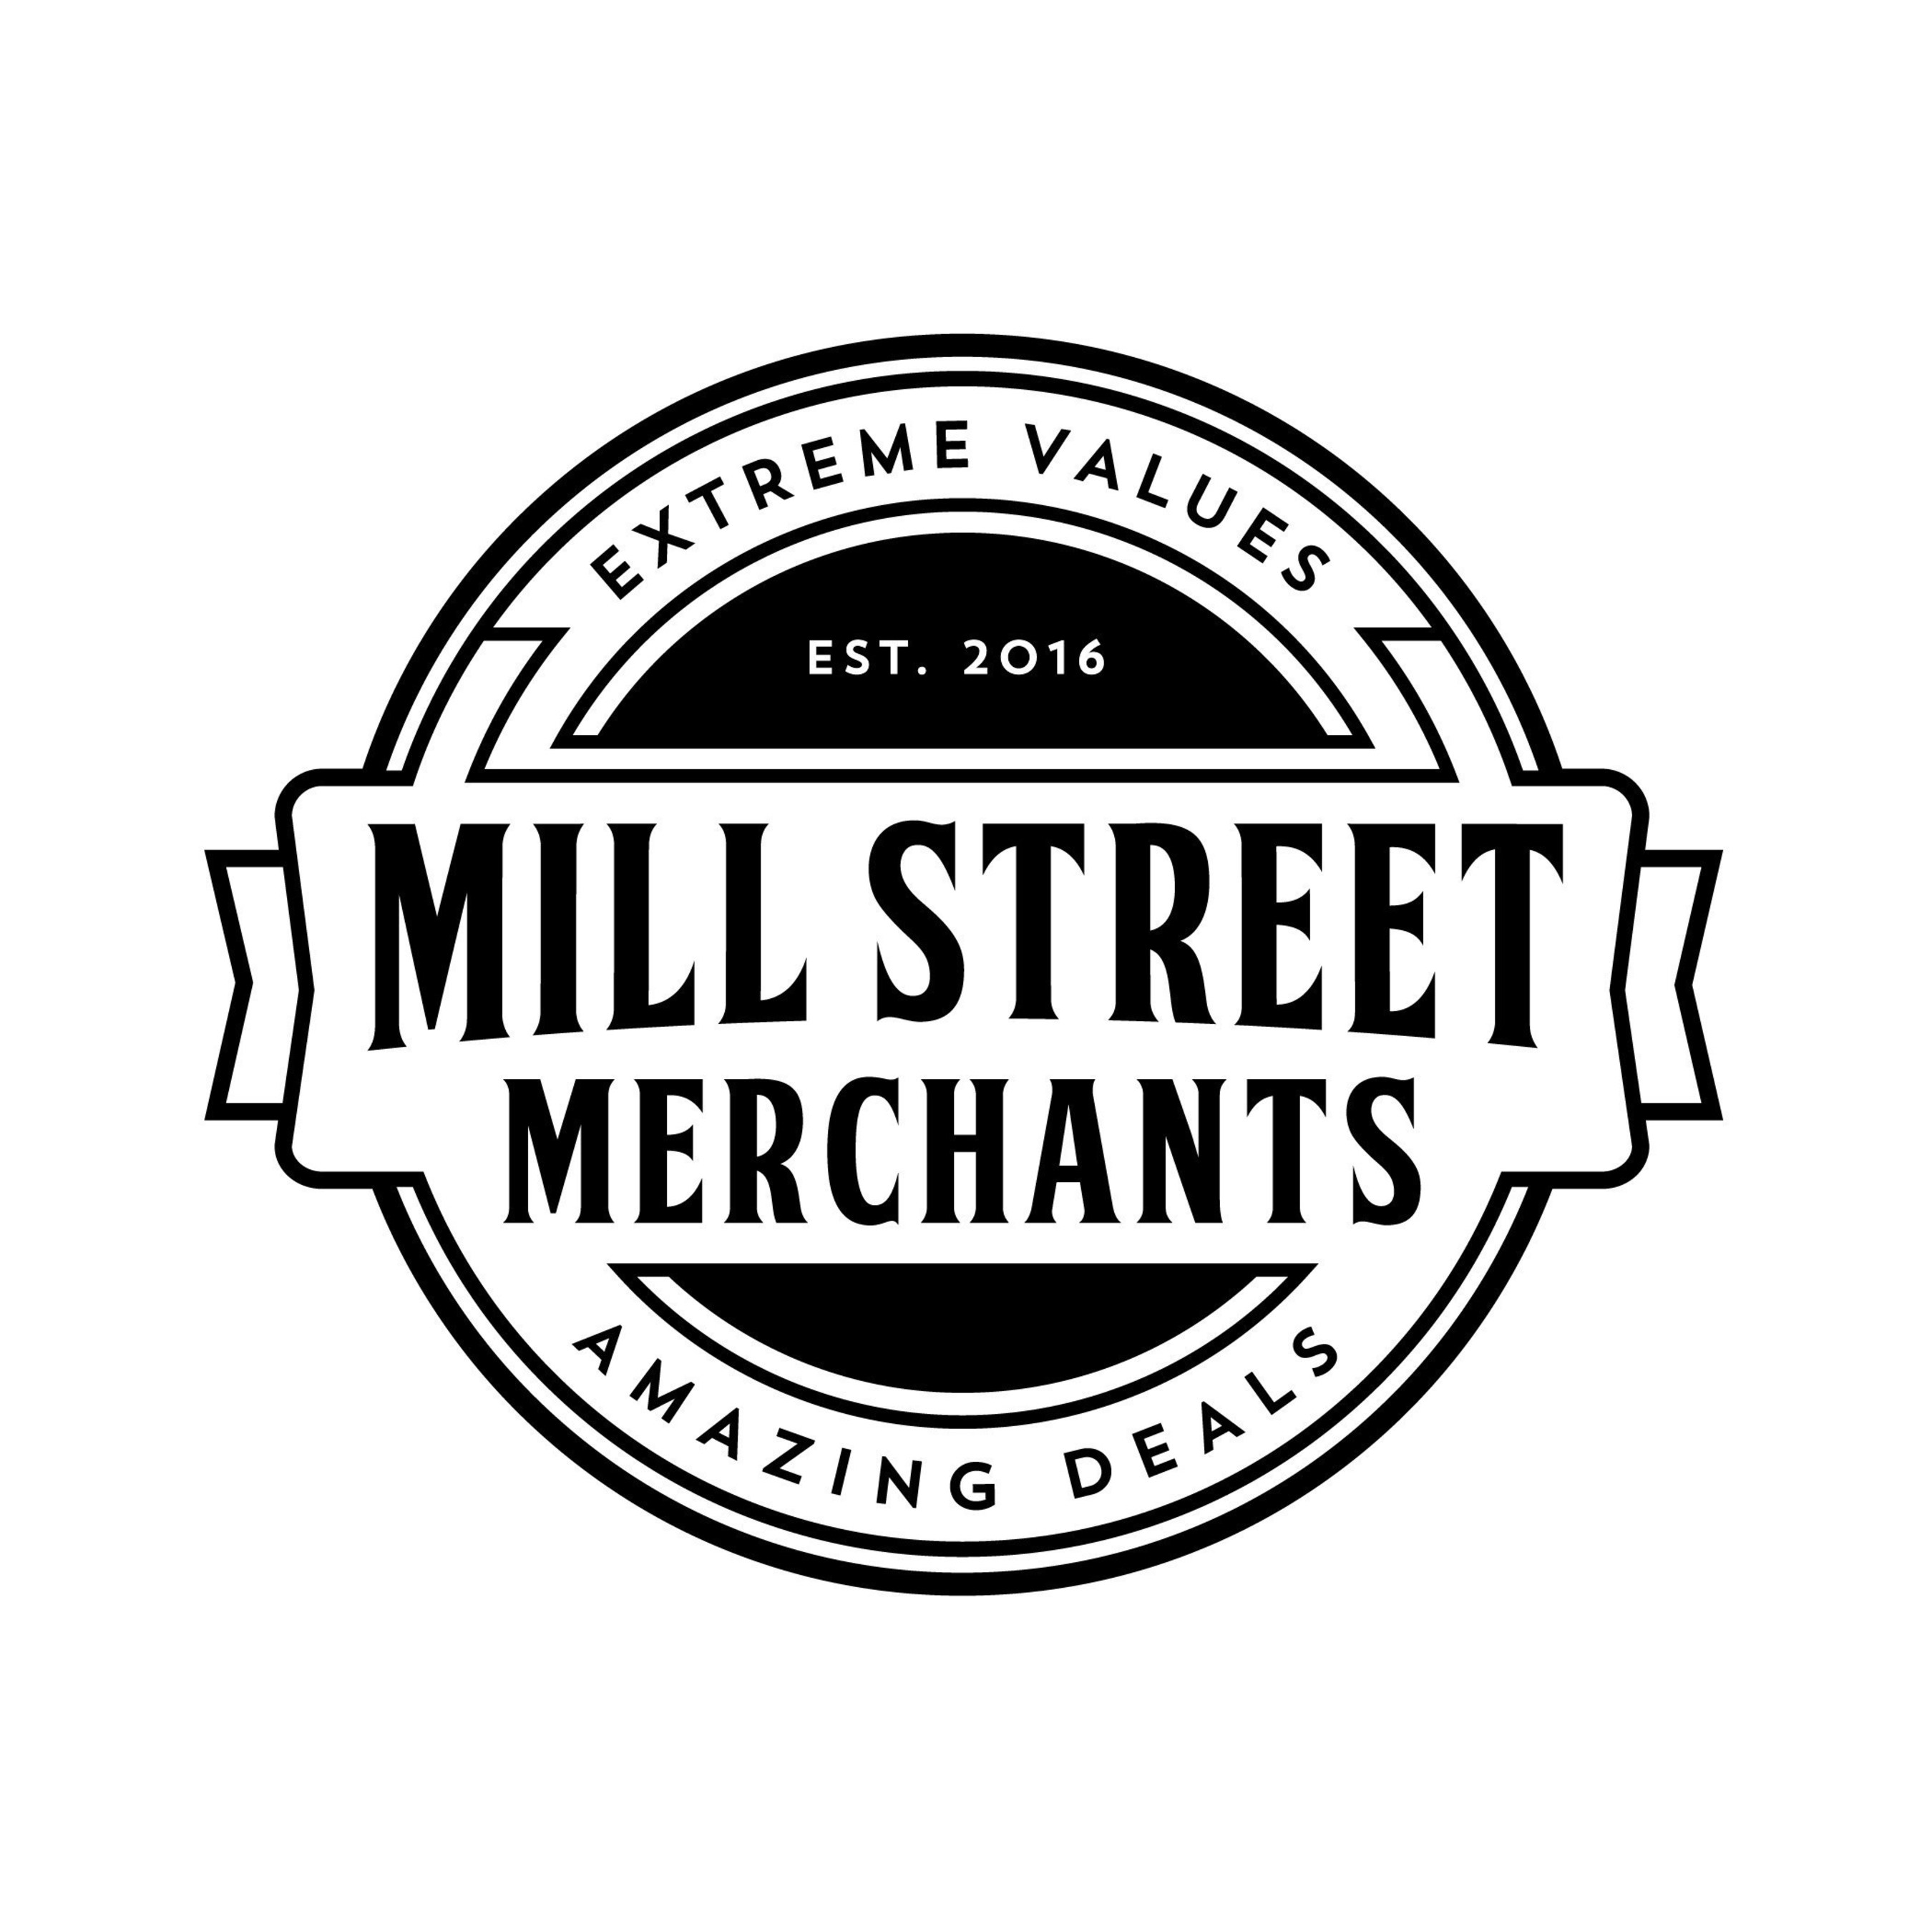 Mill Street Merchants - Delivering extreme grocery values and amazing food and beverage deals